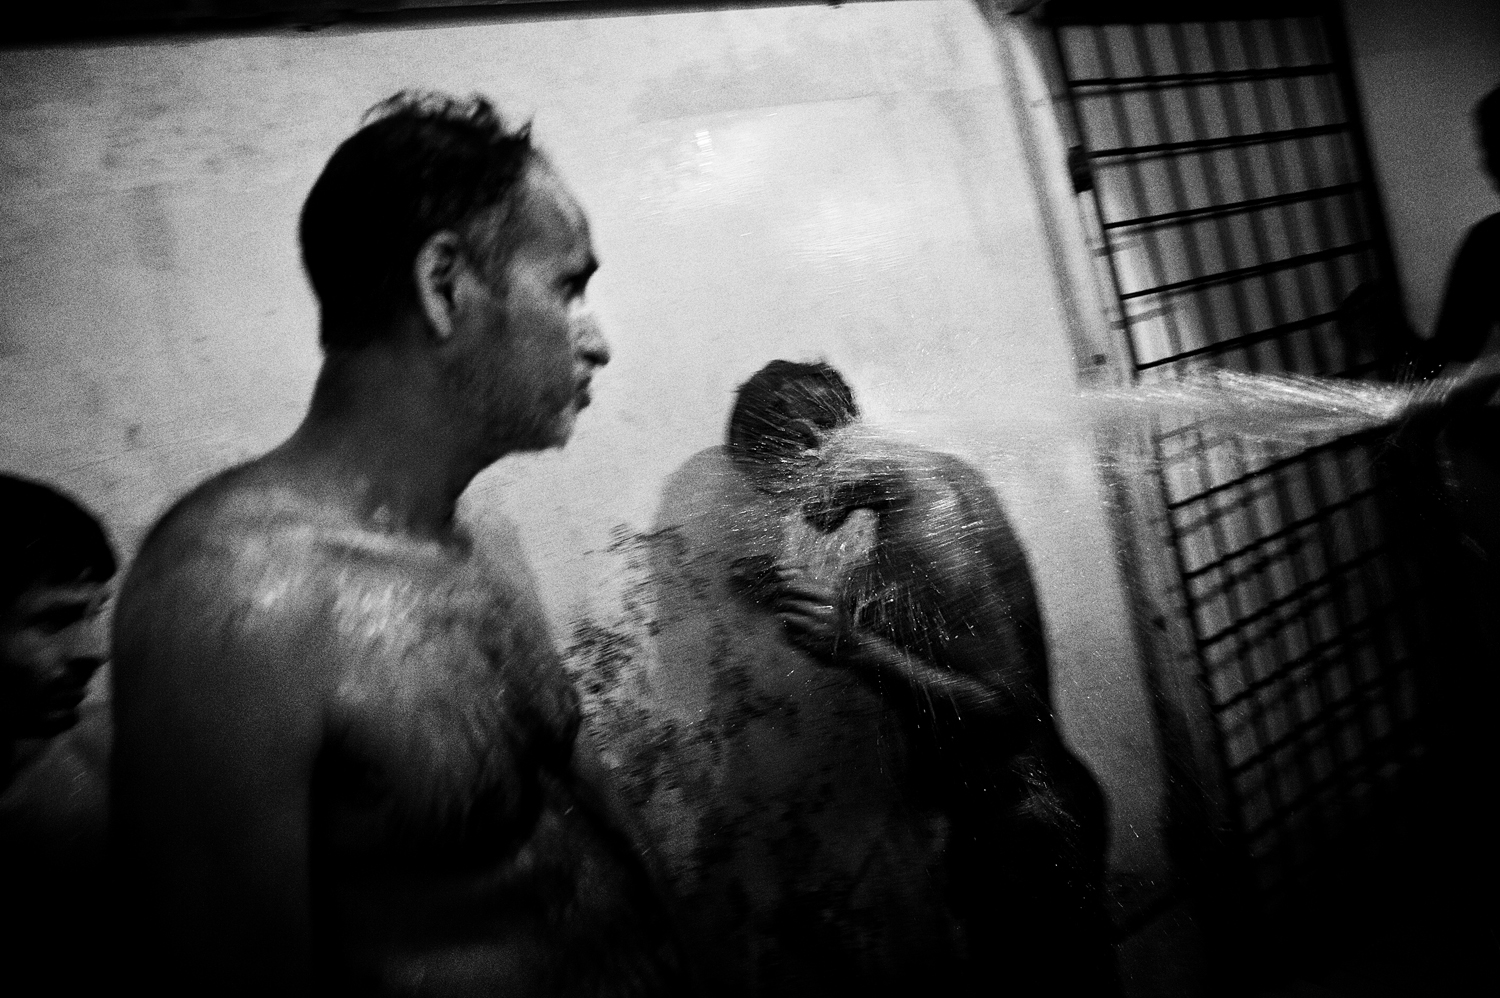 Patients suffering from suspected mental illness in the showers at a center run by volunteers in Thodupuzha, Kerala. August 2009.